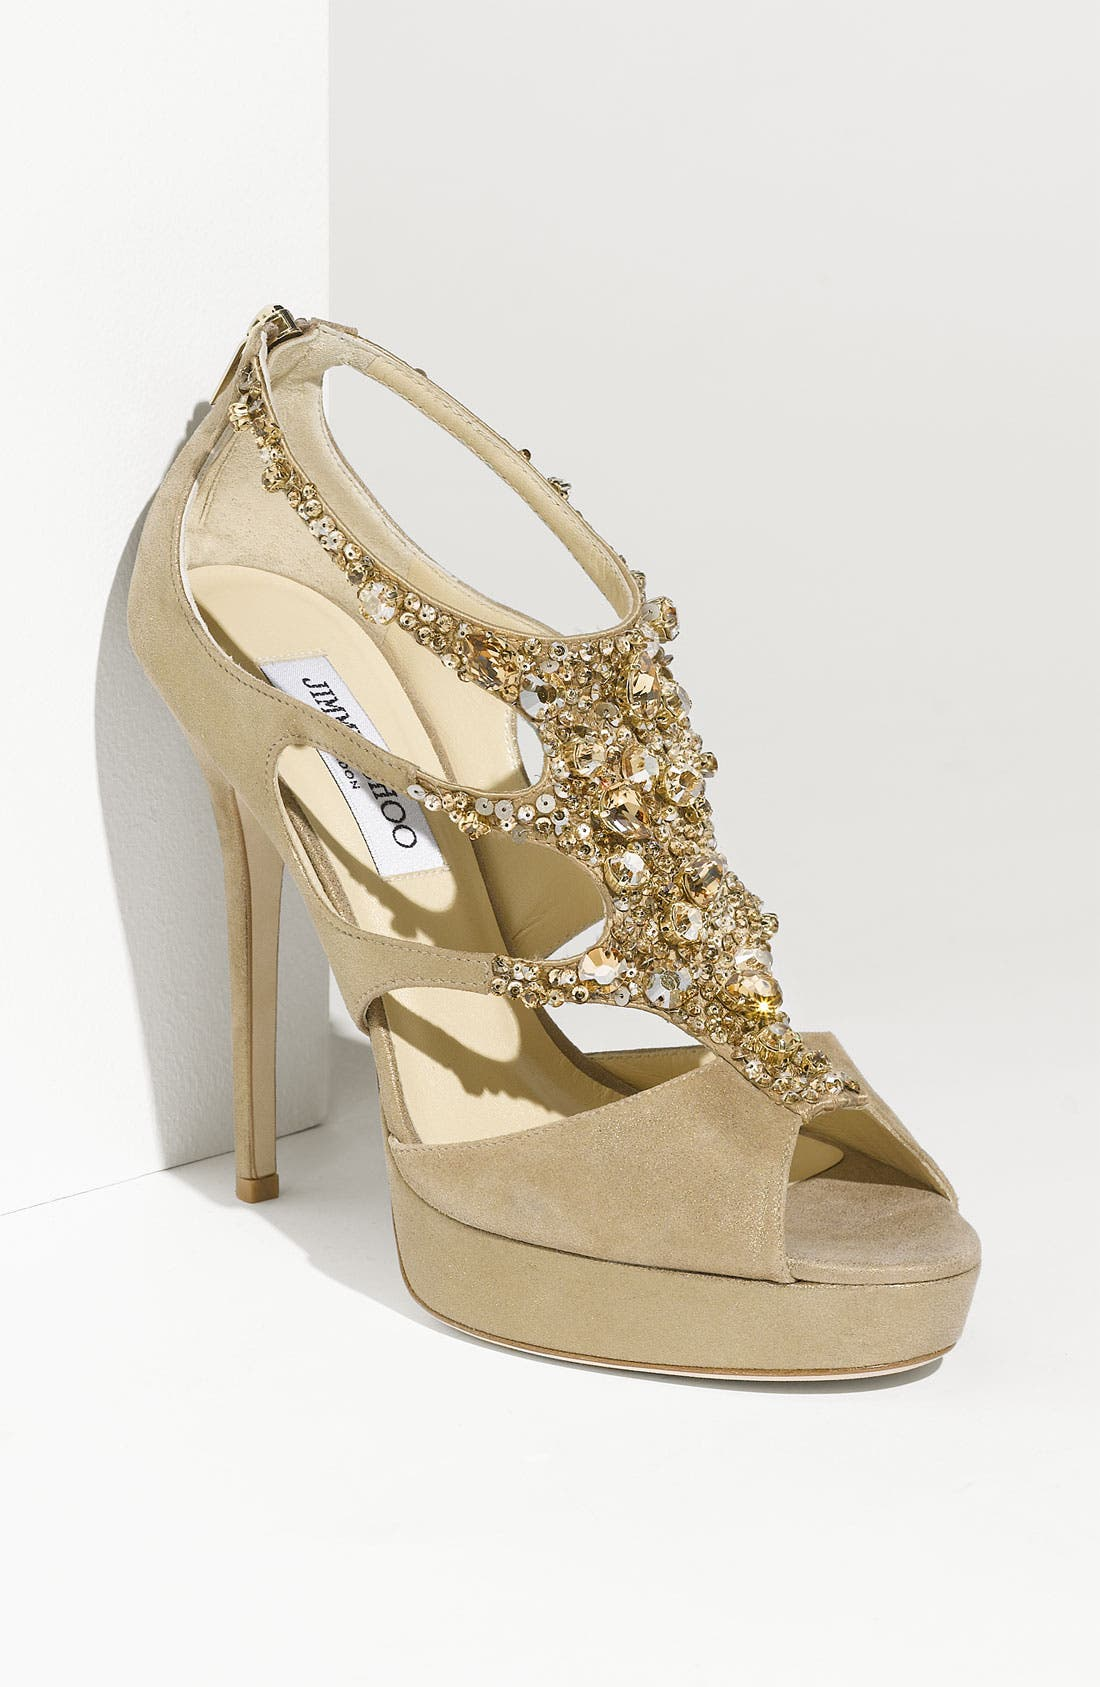 Alternate Image 1 Selected - Jimmy Choo 'Teal Tawny' Jeweled Sandal